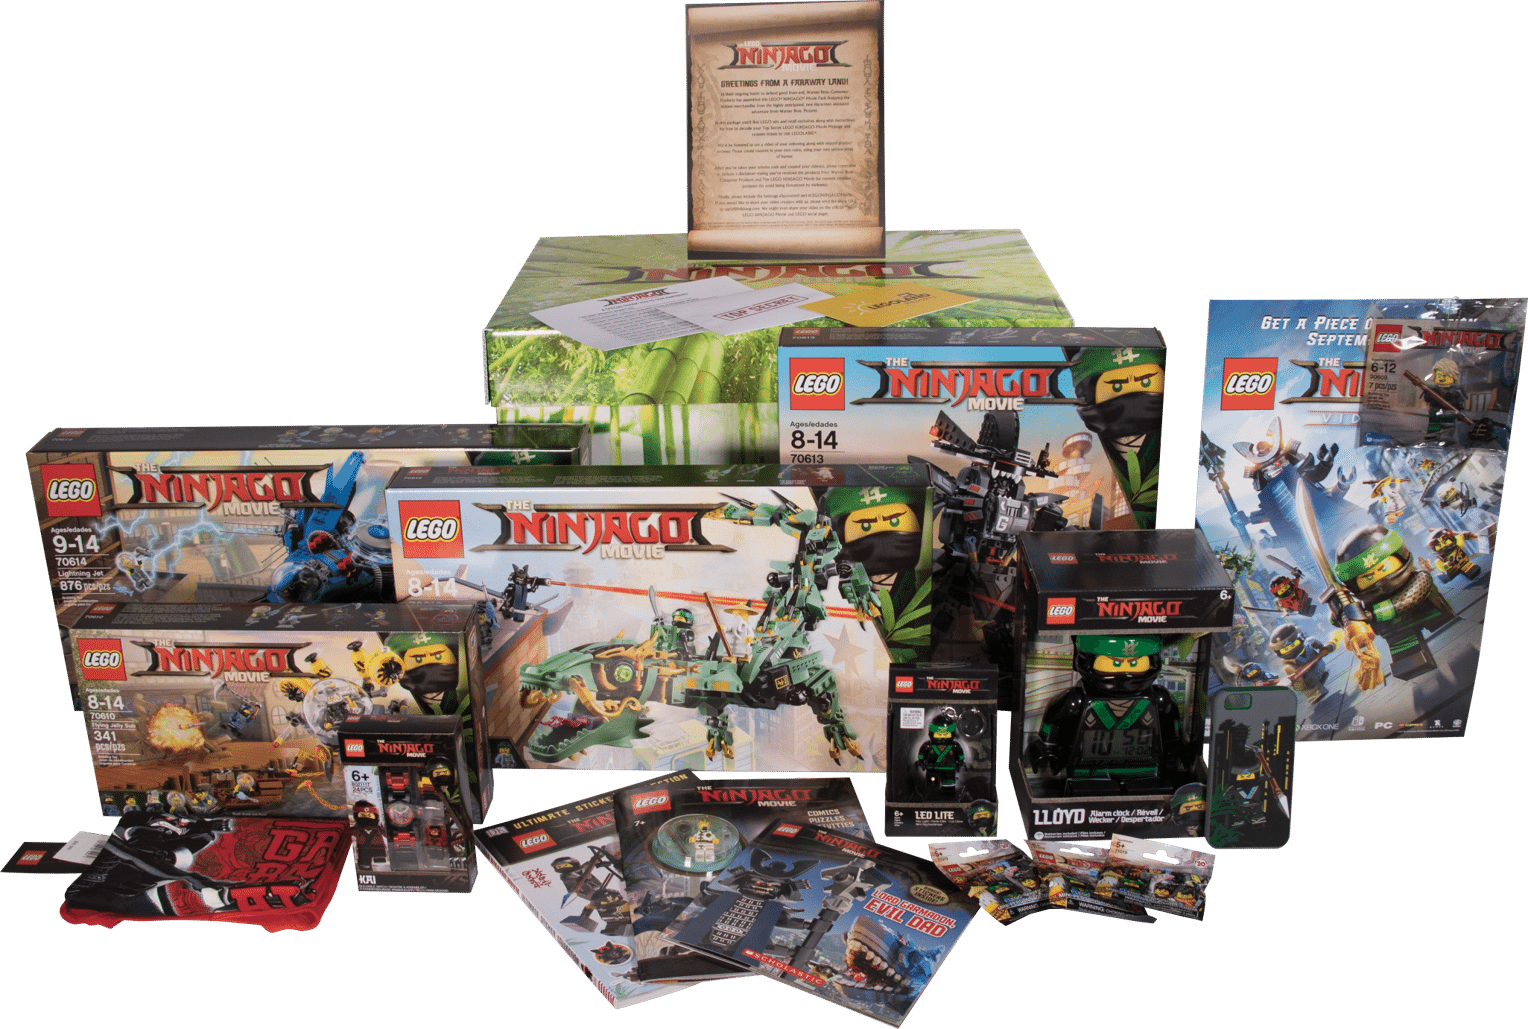 Geekdad Lego Ninjago Movie Giveaway